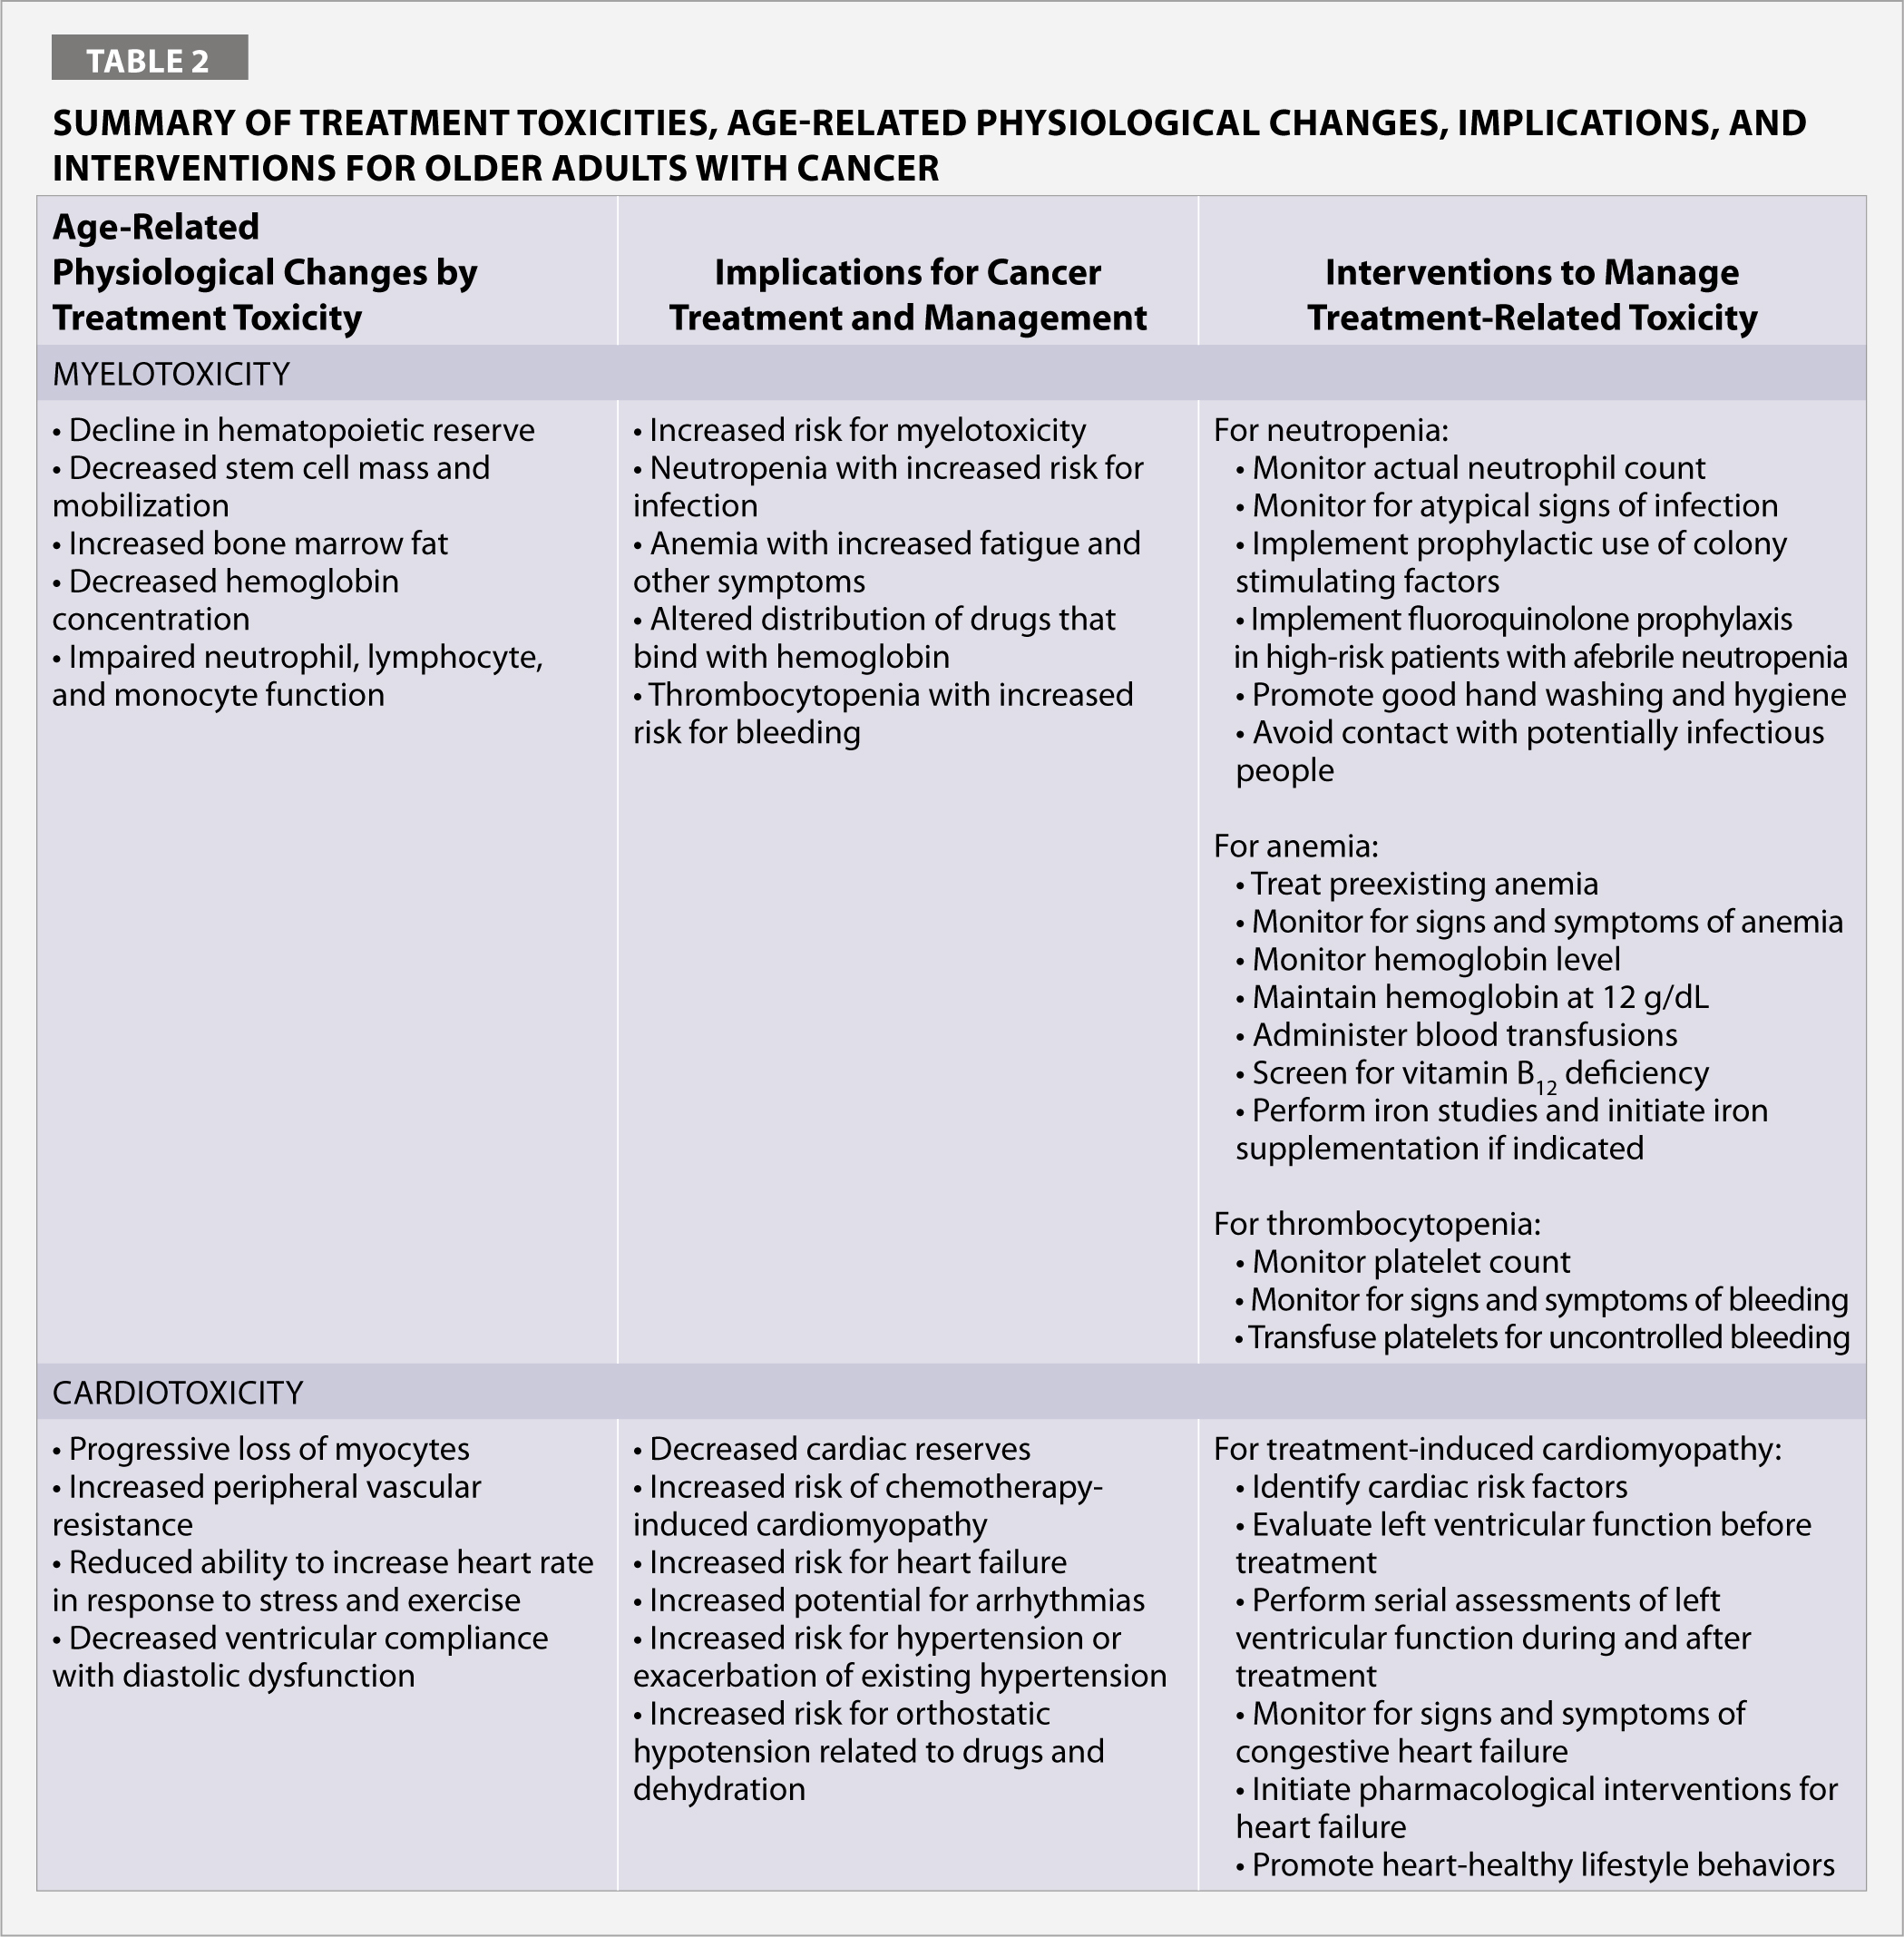 Summary of Treatment Toxicities, Age-Related Physiological Changes, Implications, and Interventions for Older Adults with Cancer